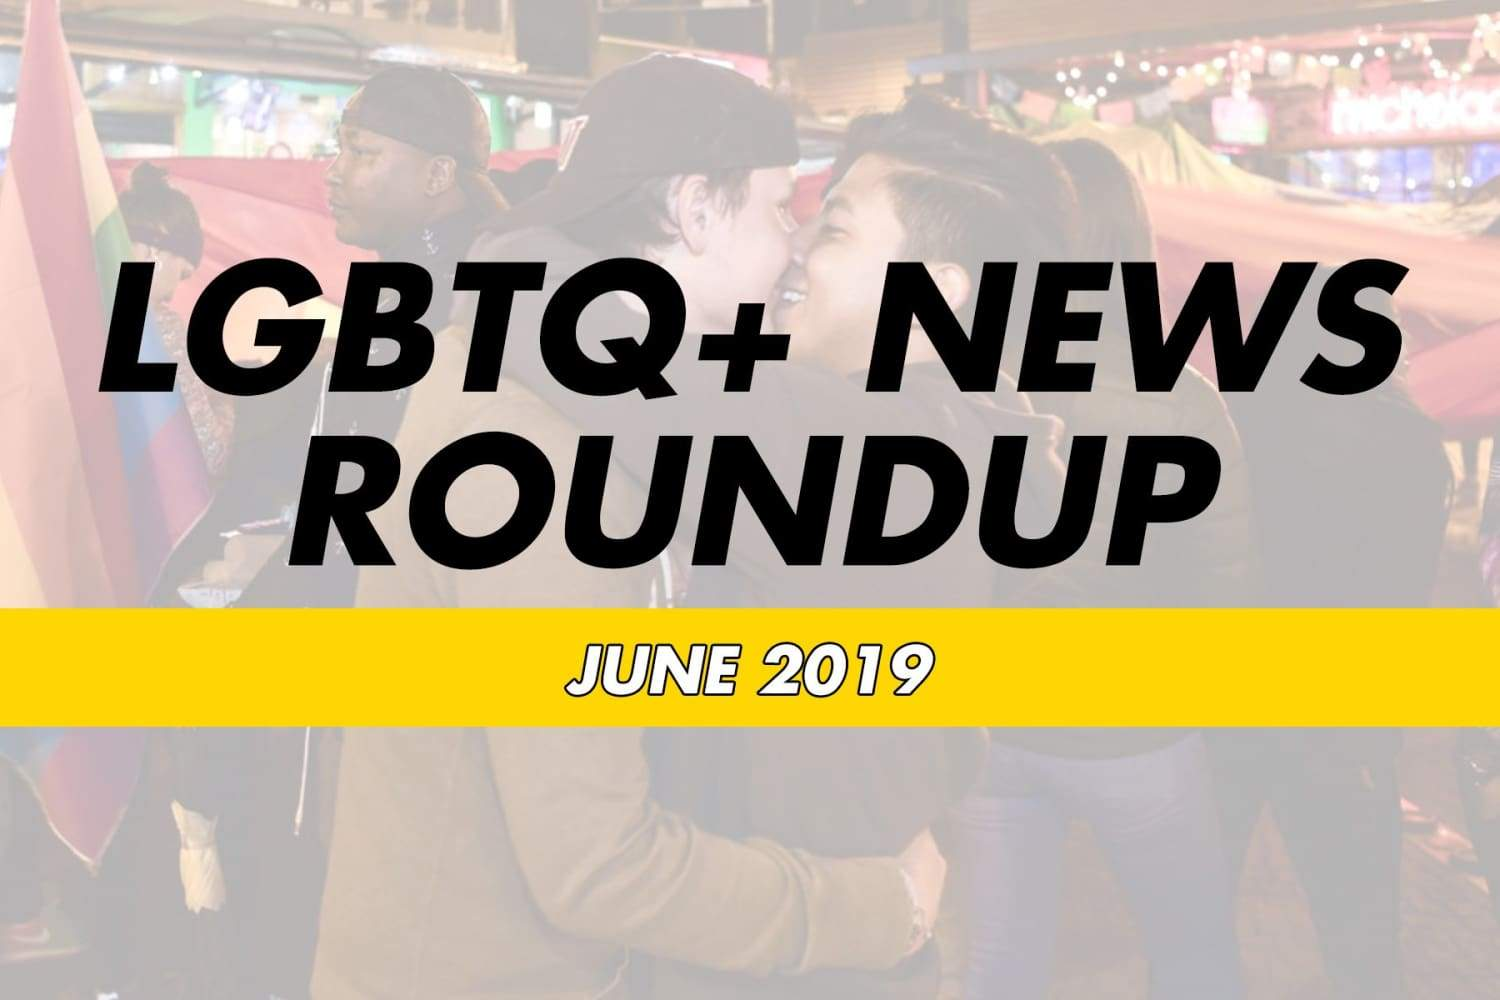 LGBTQ News June 2019